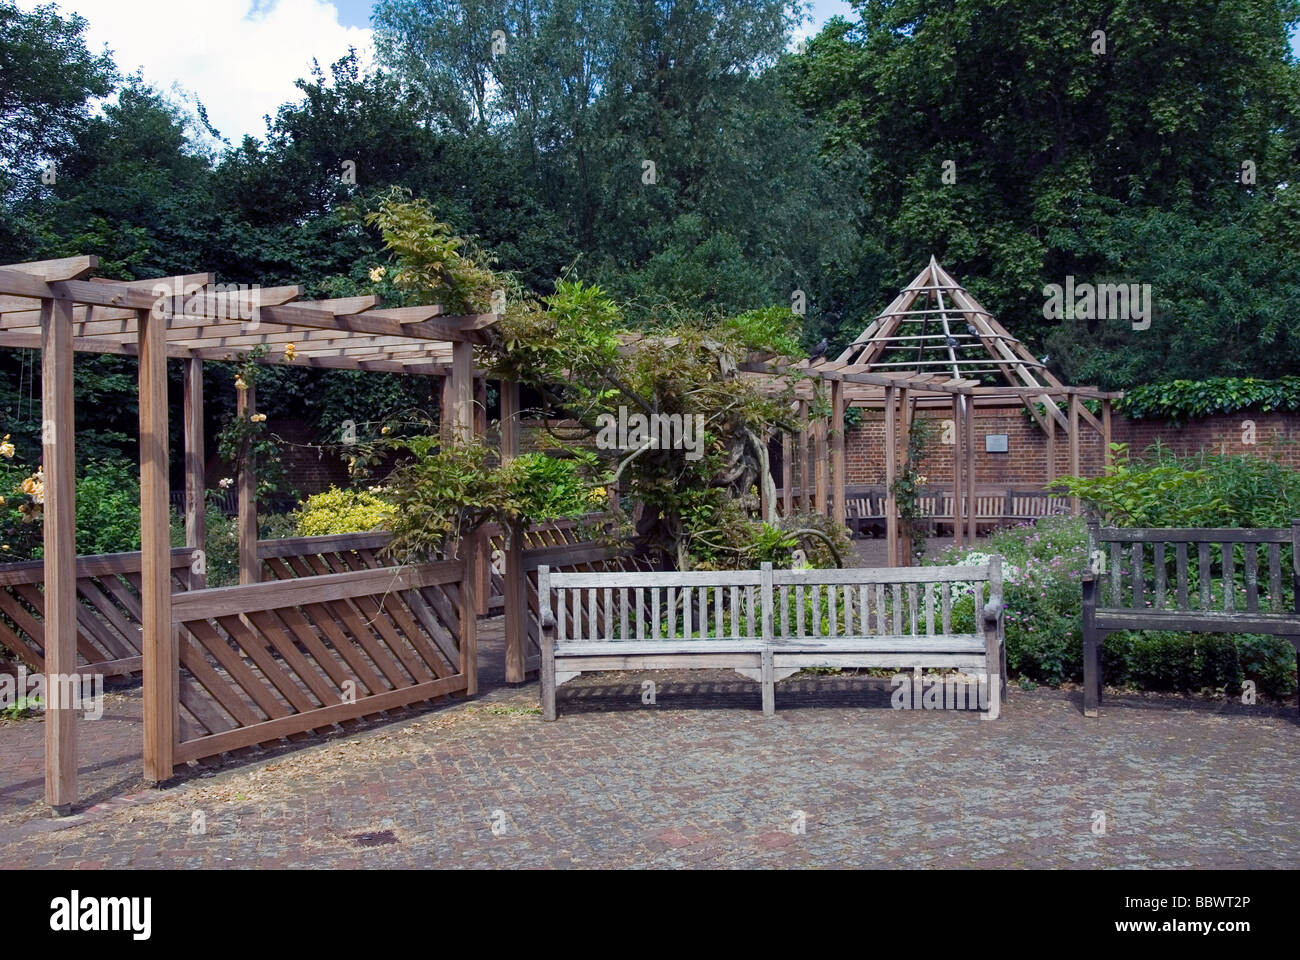 Empty Bench in a English Garden - Stock Image